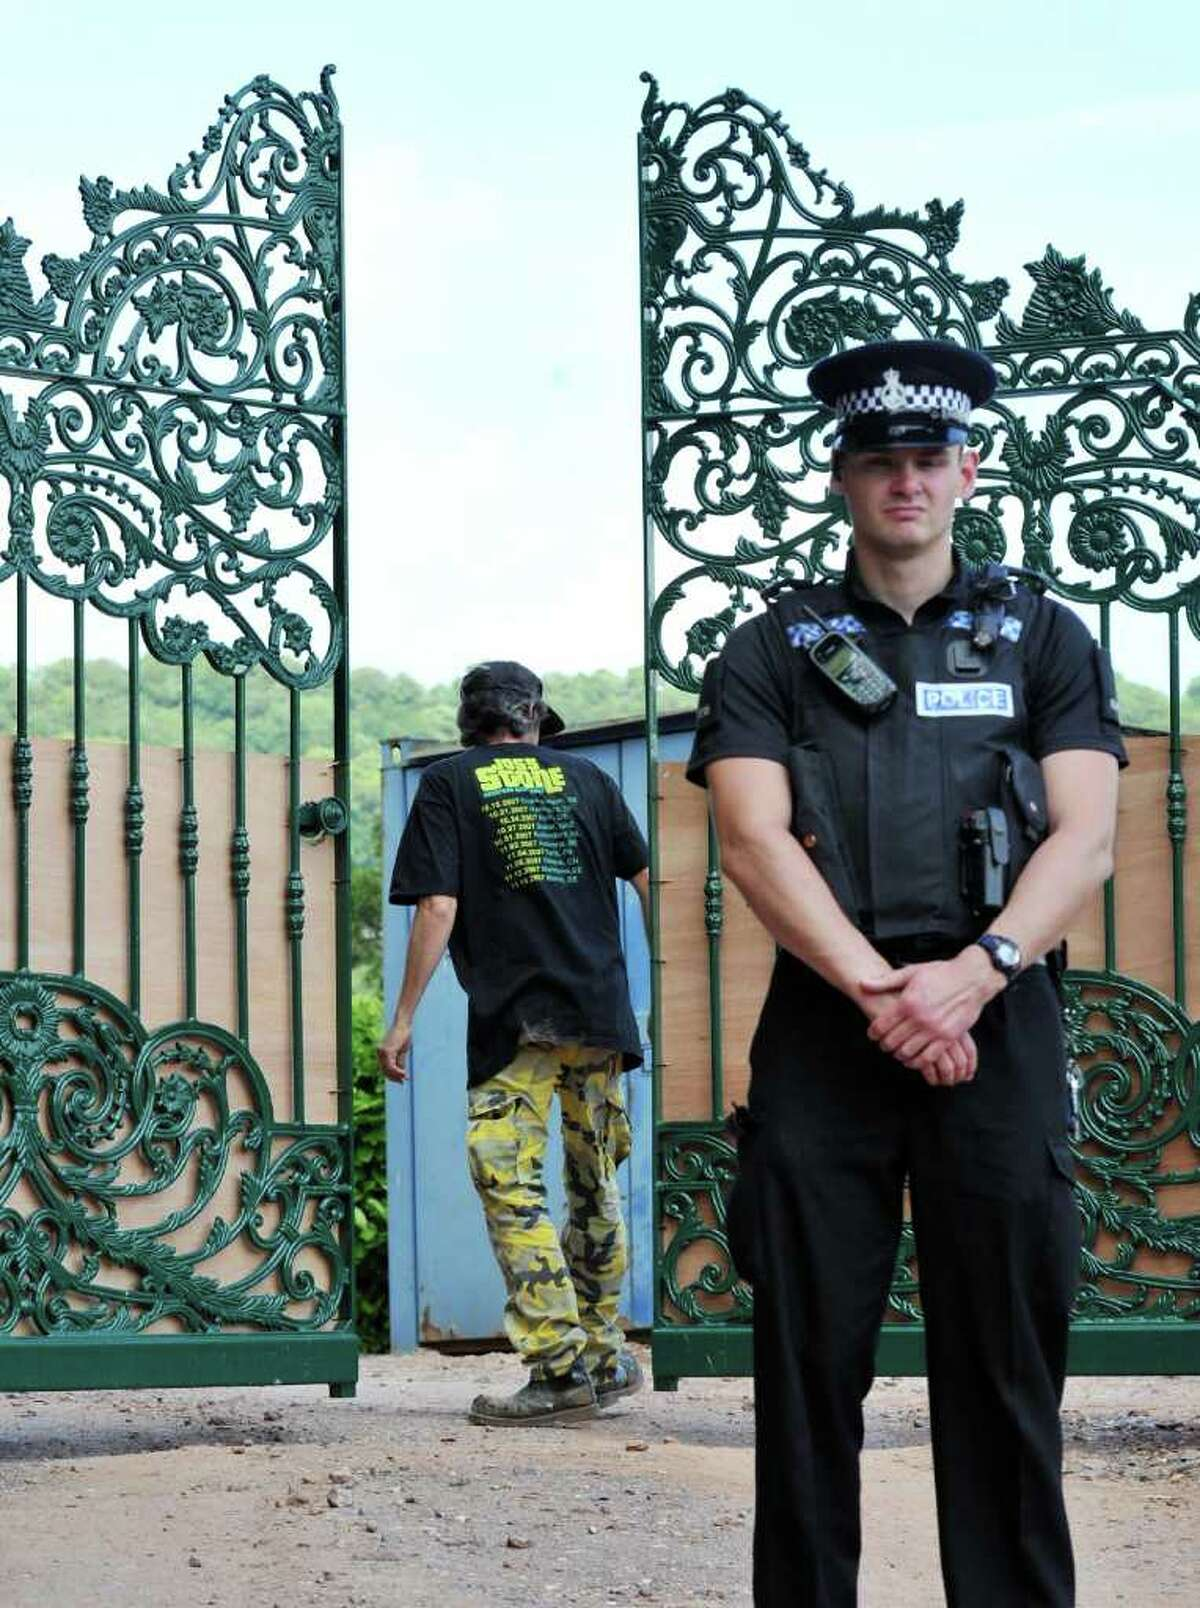 Police secure the entrance as a worker adjusts the gated entrance into singer Joss Stone's house near Cullompton, England, Wednesday June 15, 2011. British police have arrested two men Monday June 13, 2011, near to the house of Joss Stone in Cullompton, southwest England, on suspicion of conspiracy to rob and murder, after residents reported a suspicious-looking vehicle. Police would not say whether 24-year-old Stone was at home when the men were arrested. (AP Photo / Tim Ireland, PA) UNITED KINGDOM OUT - NO SALES - NO ARCHIVE